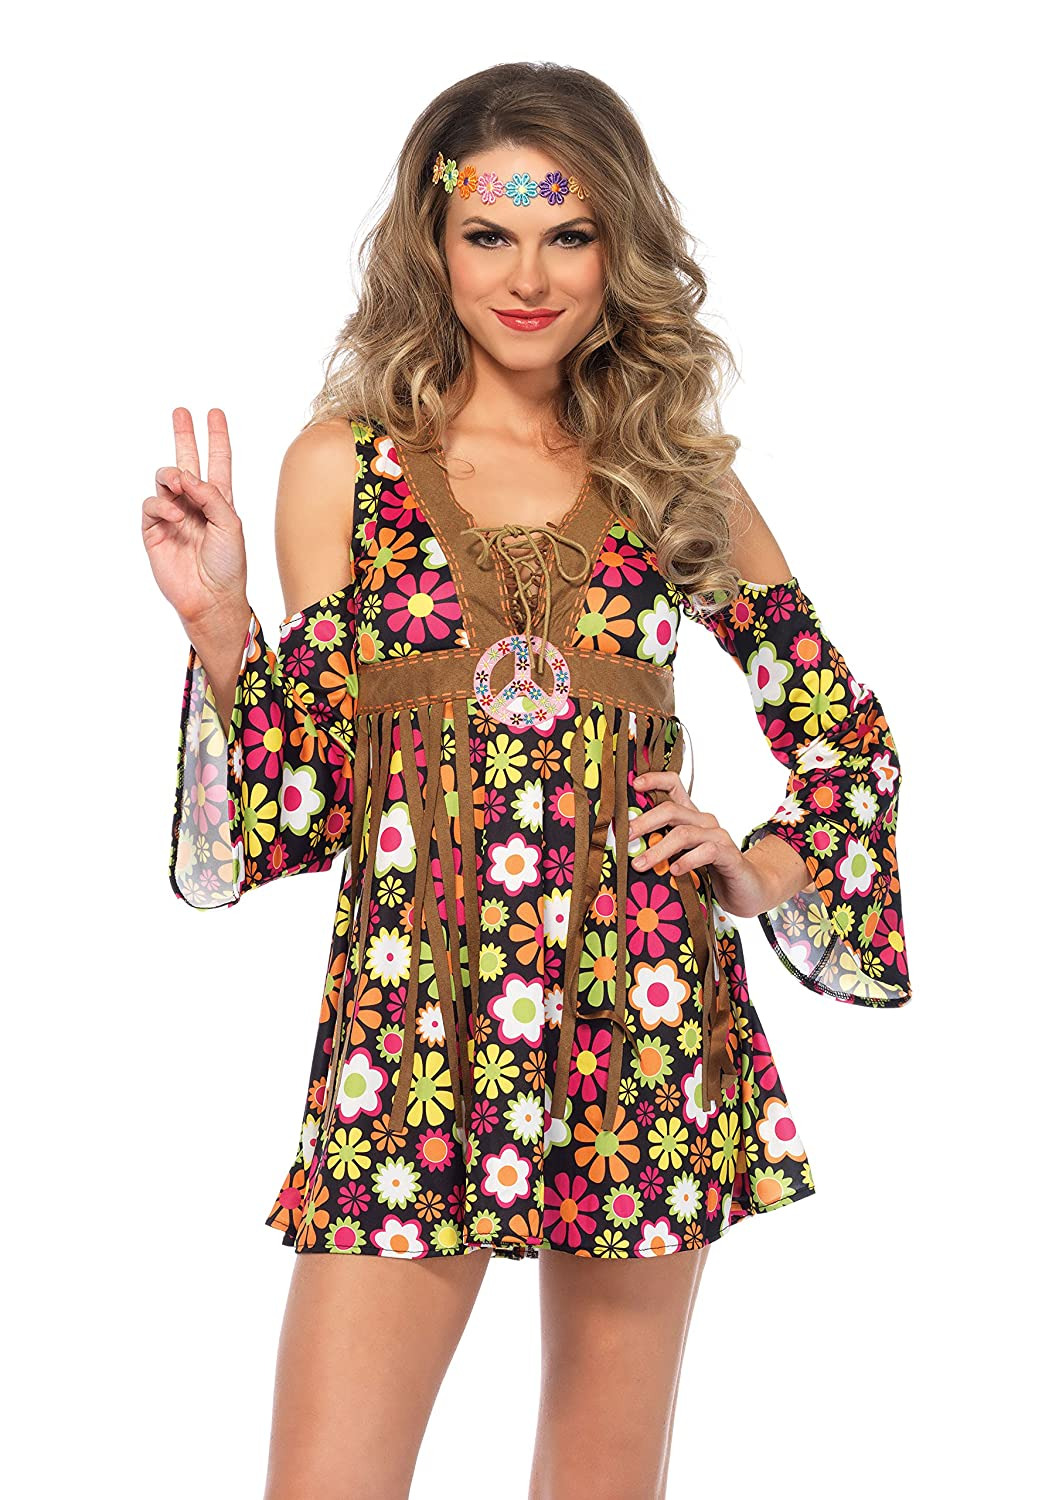 500 Vintage Style Dresses for Sale | Vintage Inspired Dresses Leg Avenue Womens Starflower Hippie Costume $24.89 AT vintagedancer.com